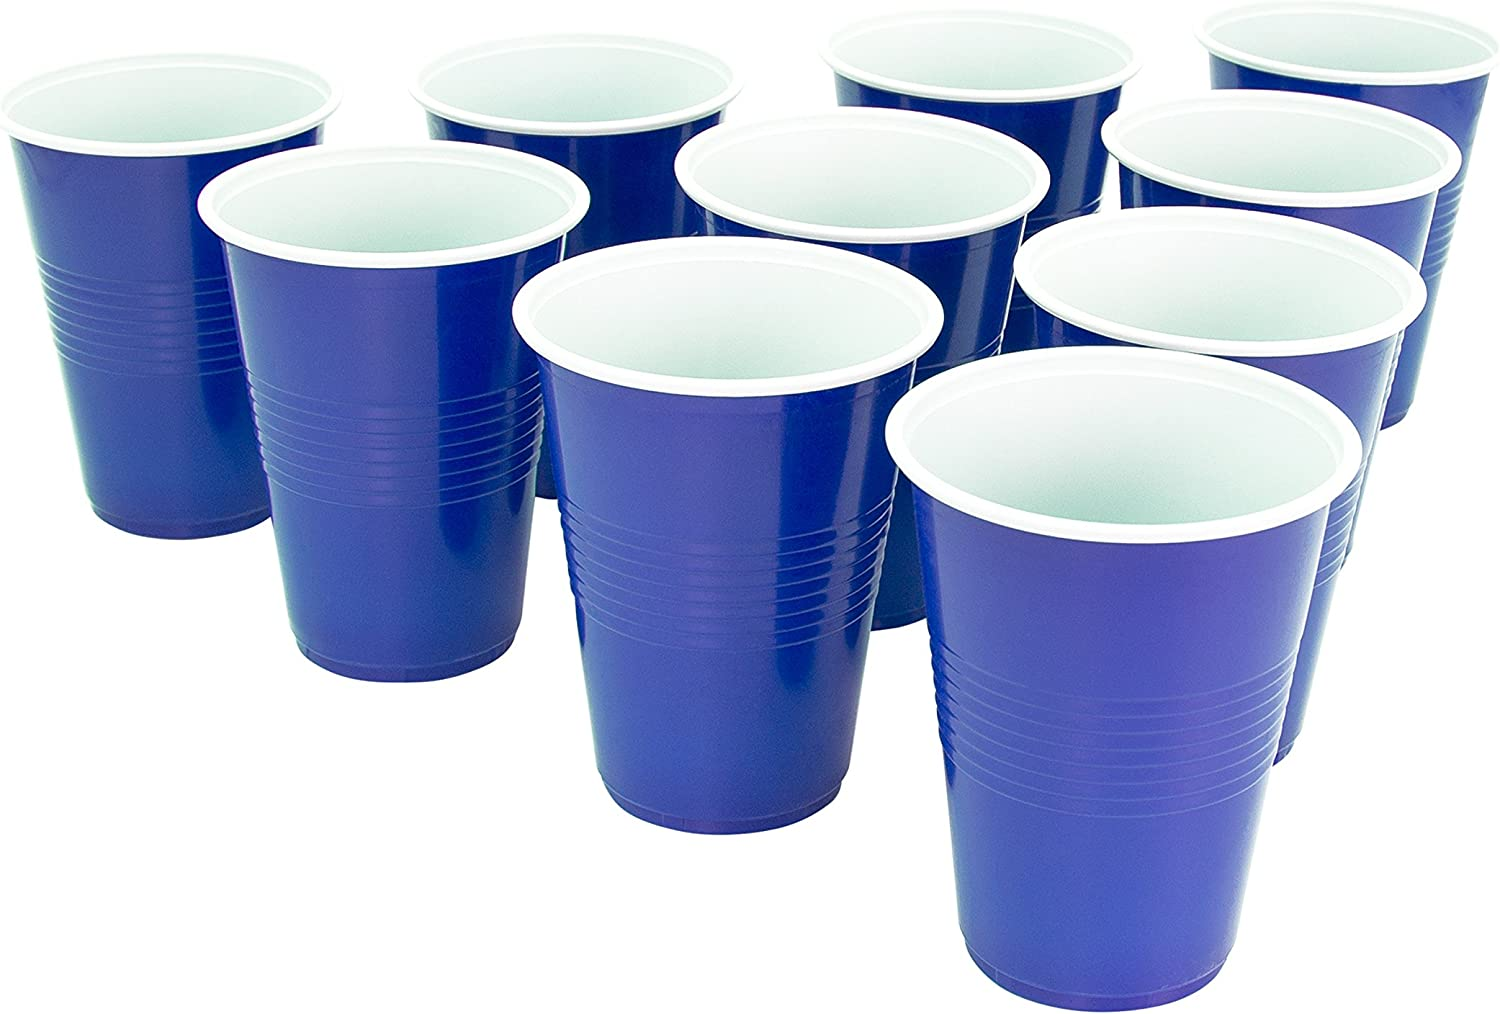 Global Gizmos 50670 Beer Pong Set Multi Party//Fun 24 Cups /& 3 Balls 23cm x 10cm Adult Only Drinking Game